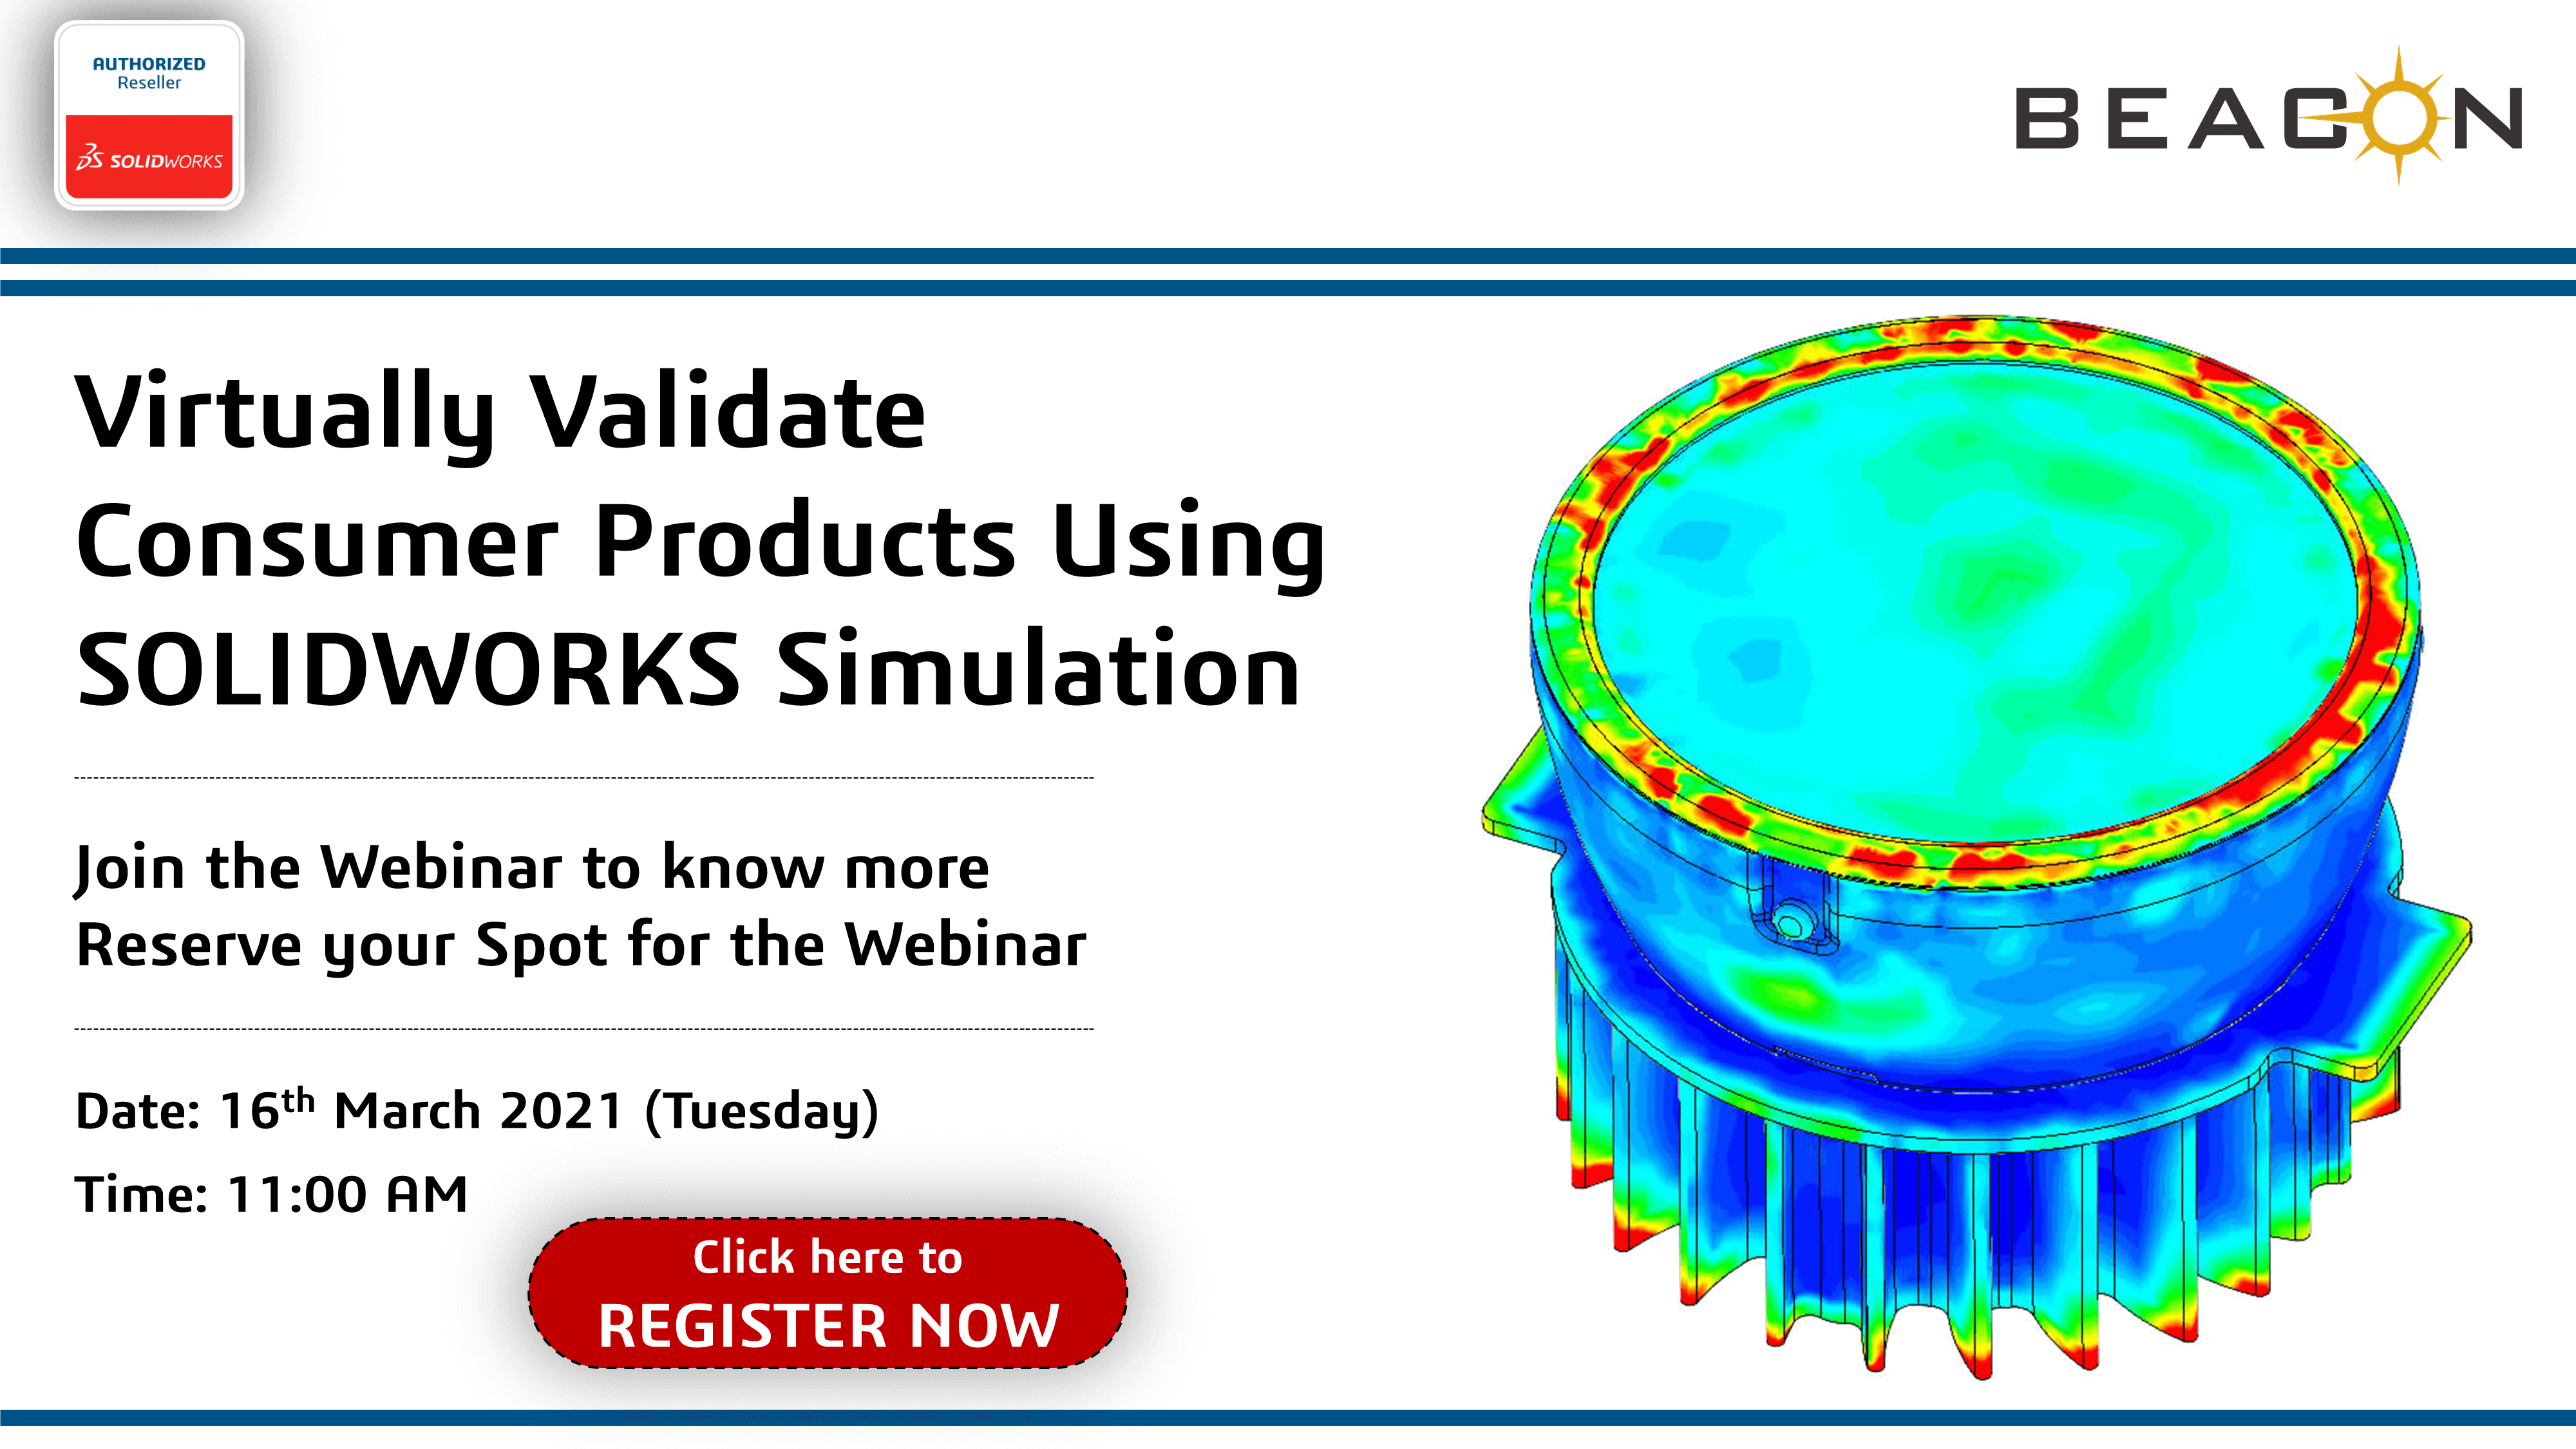 Virtually Validate Consumer Products Using SOLIDWORKS Simulation